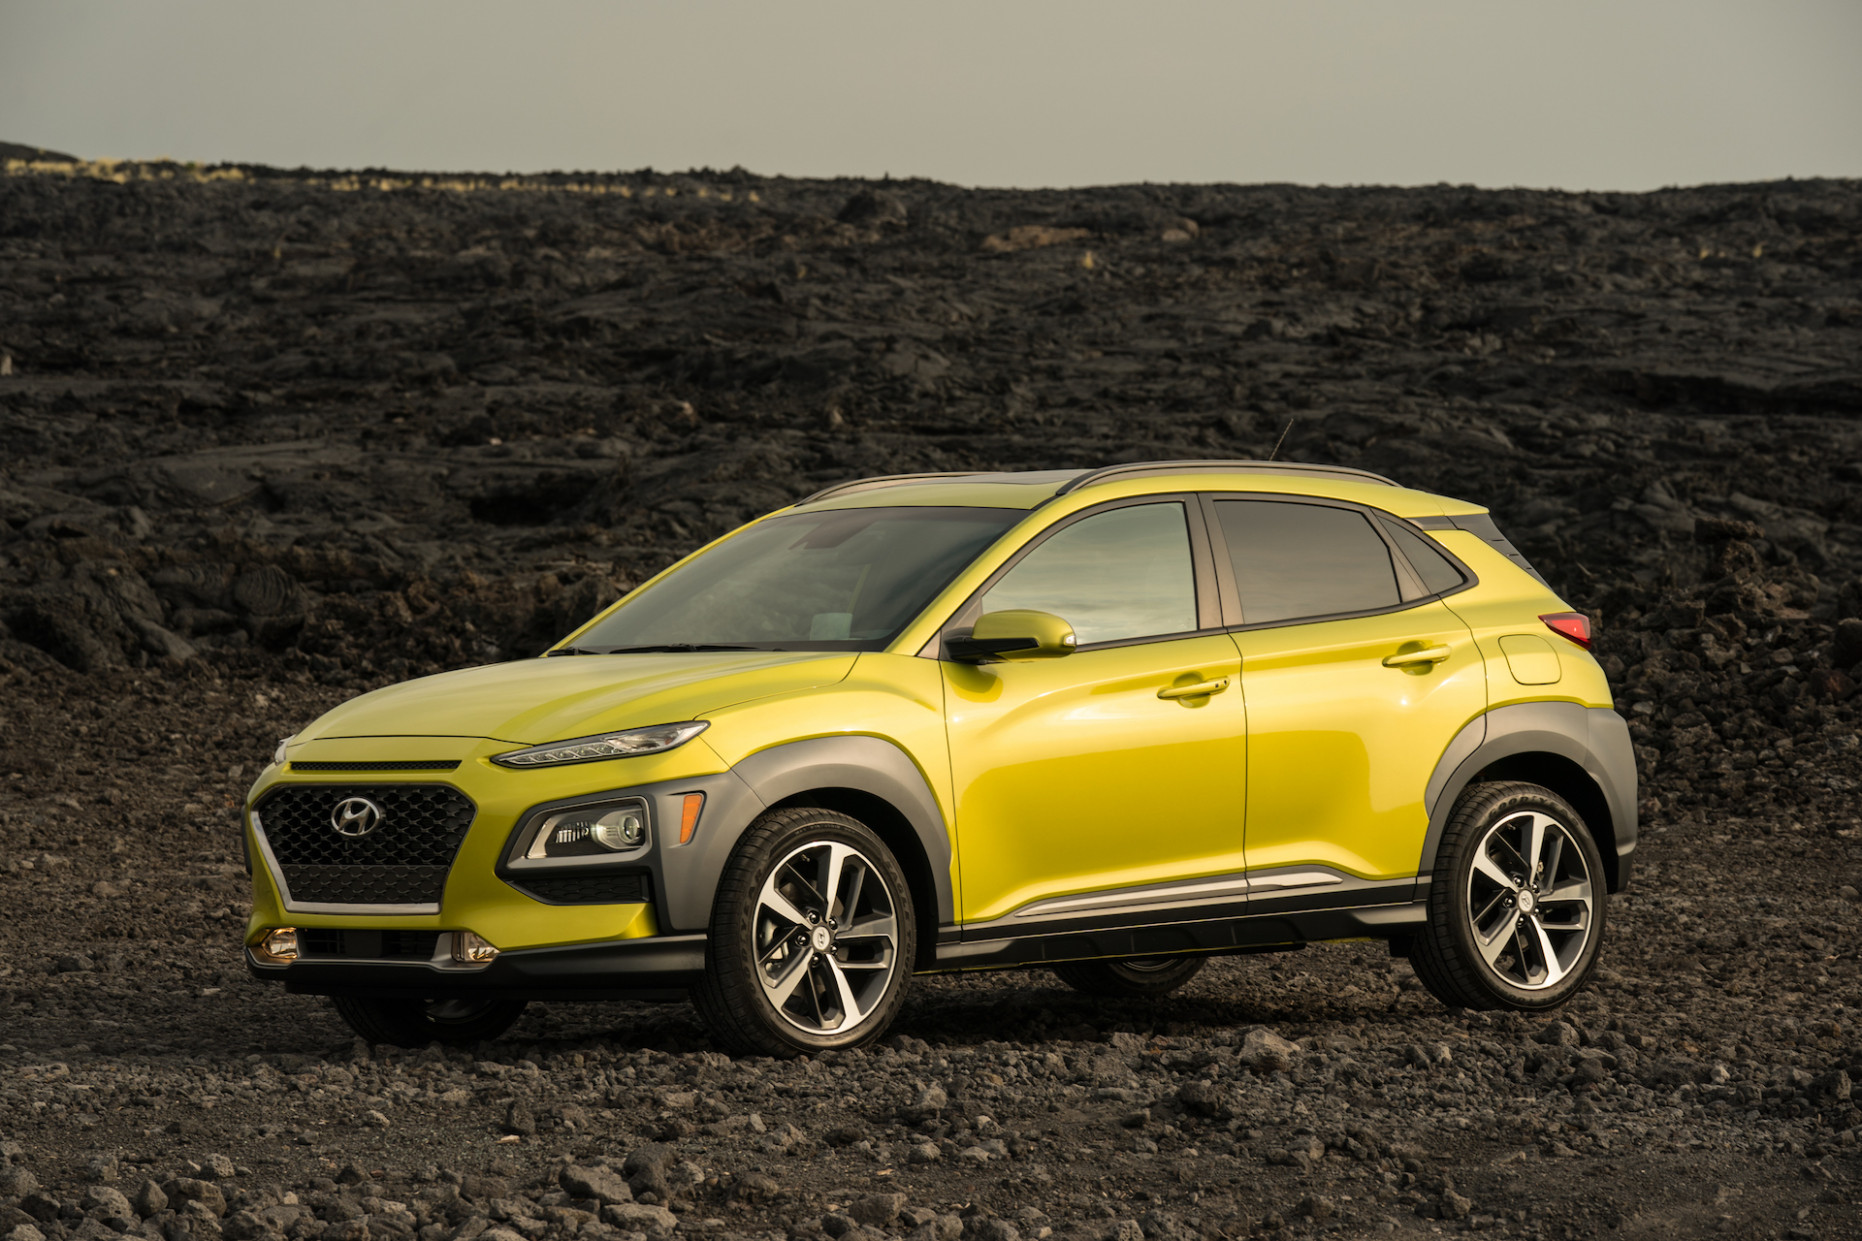 7 Hyundai Kona Review, Ratings, Specs, Prices, and Photos - The ...